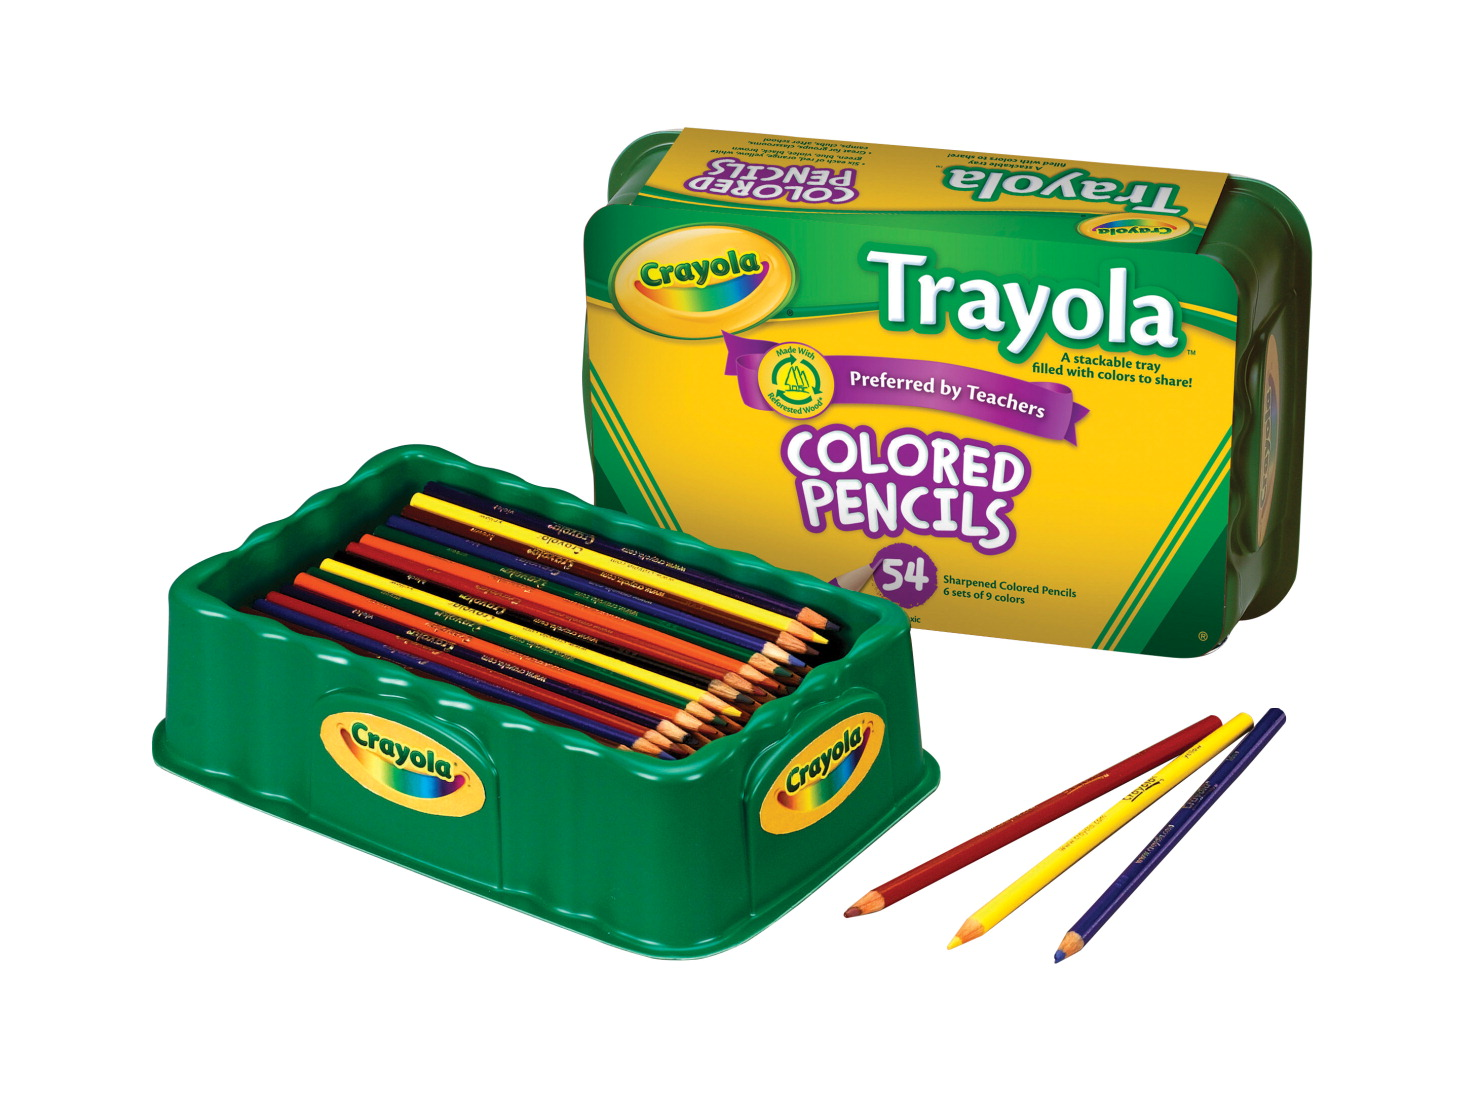 Crayola Trayola Colored Pencils, Full Size, 9 Assorted Colors, Set of 54